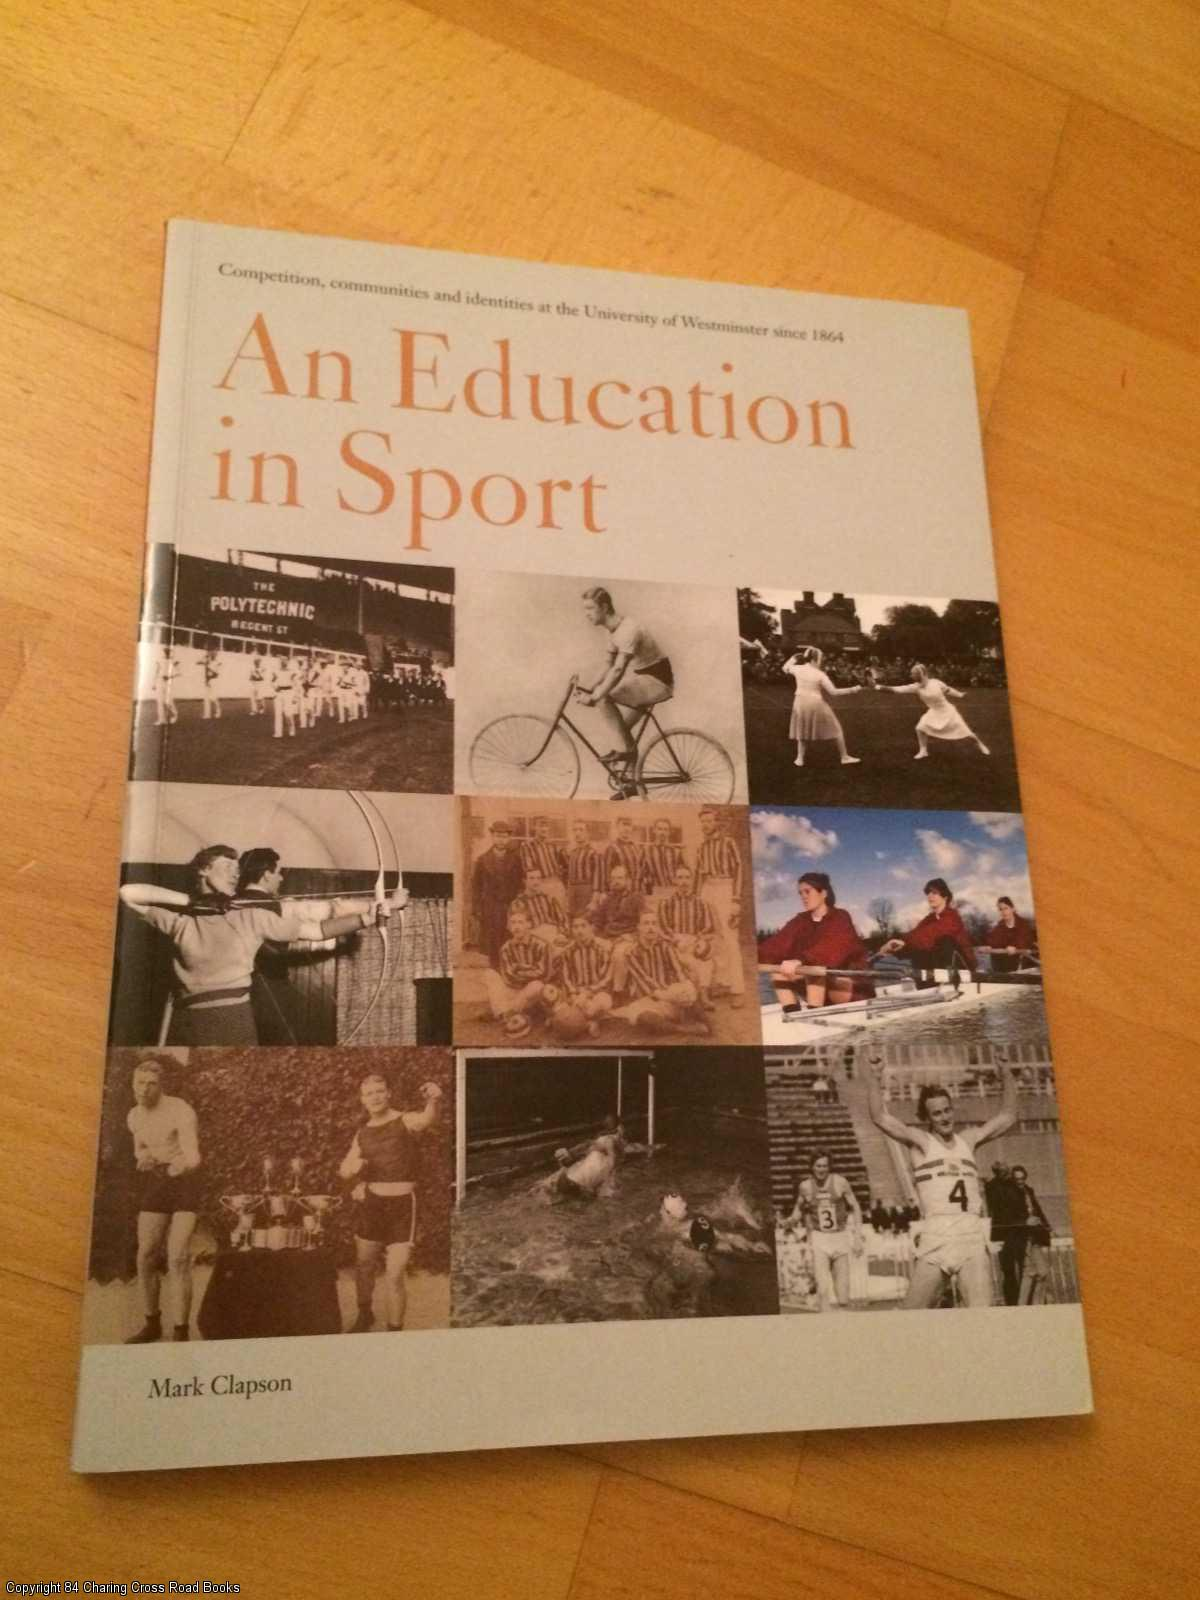 CLAPSON, MARK - An Education in Sport: Education in Sport: Competition, Communities and Identities at the University of Westminster Since 1864